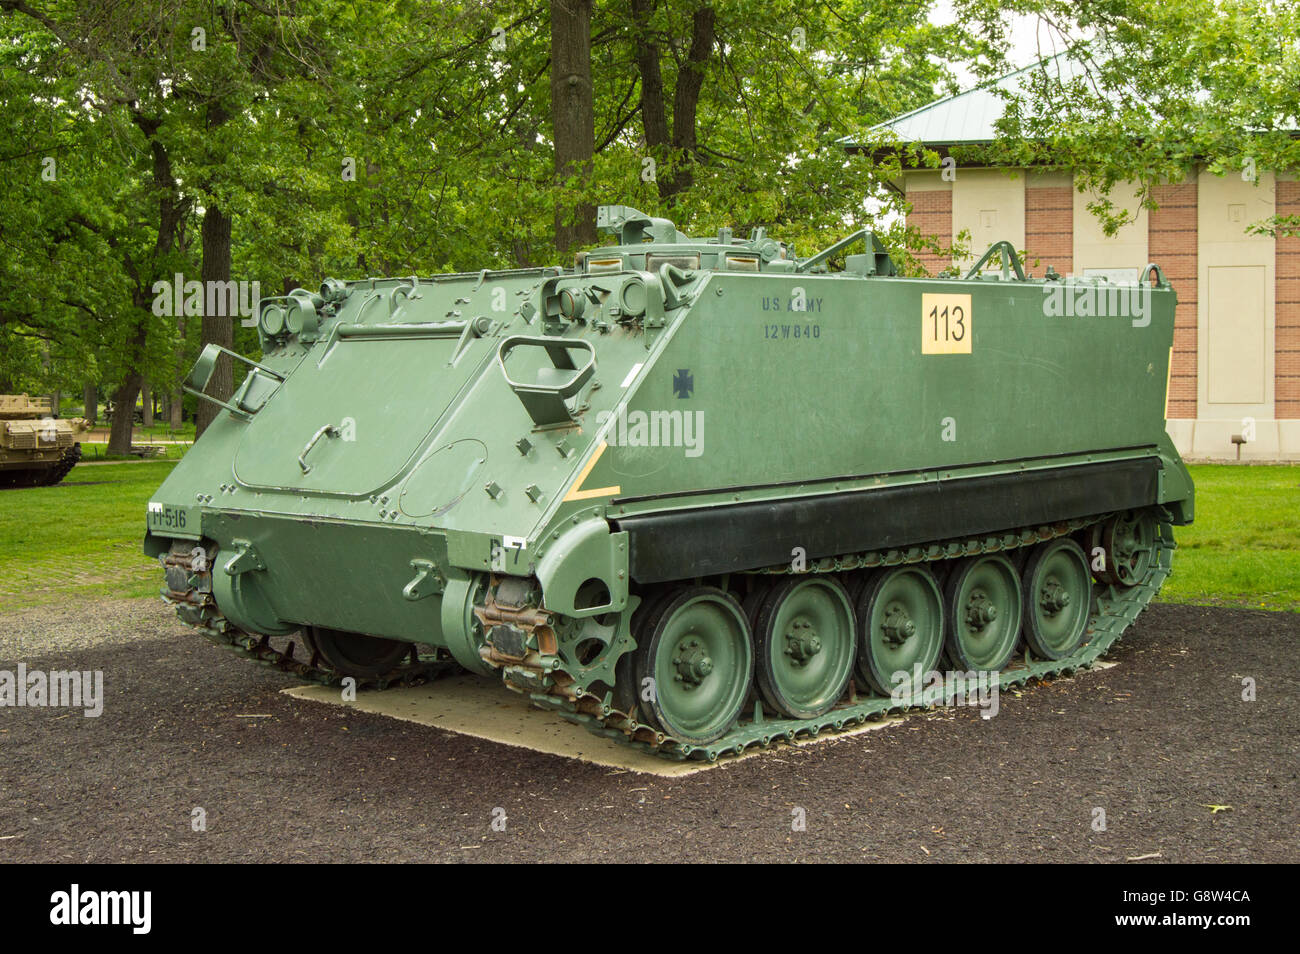 M113 Armored Personnel Carrier (APC) - Stock Image